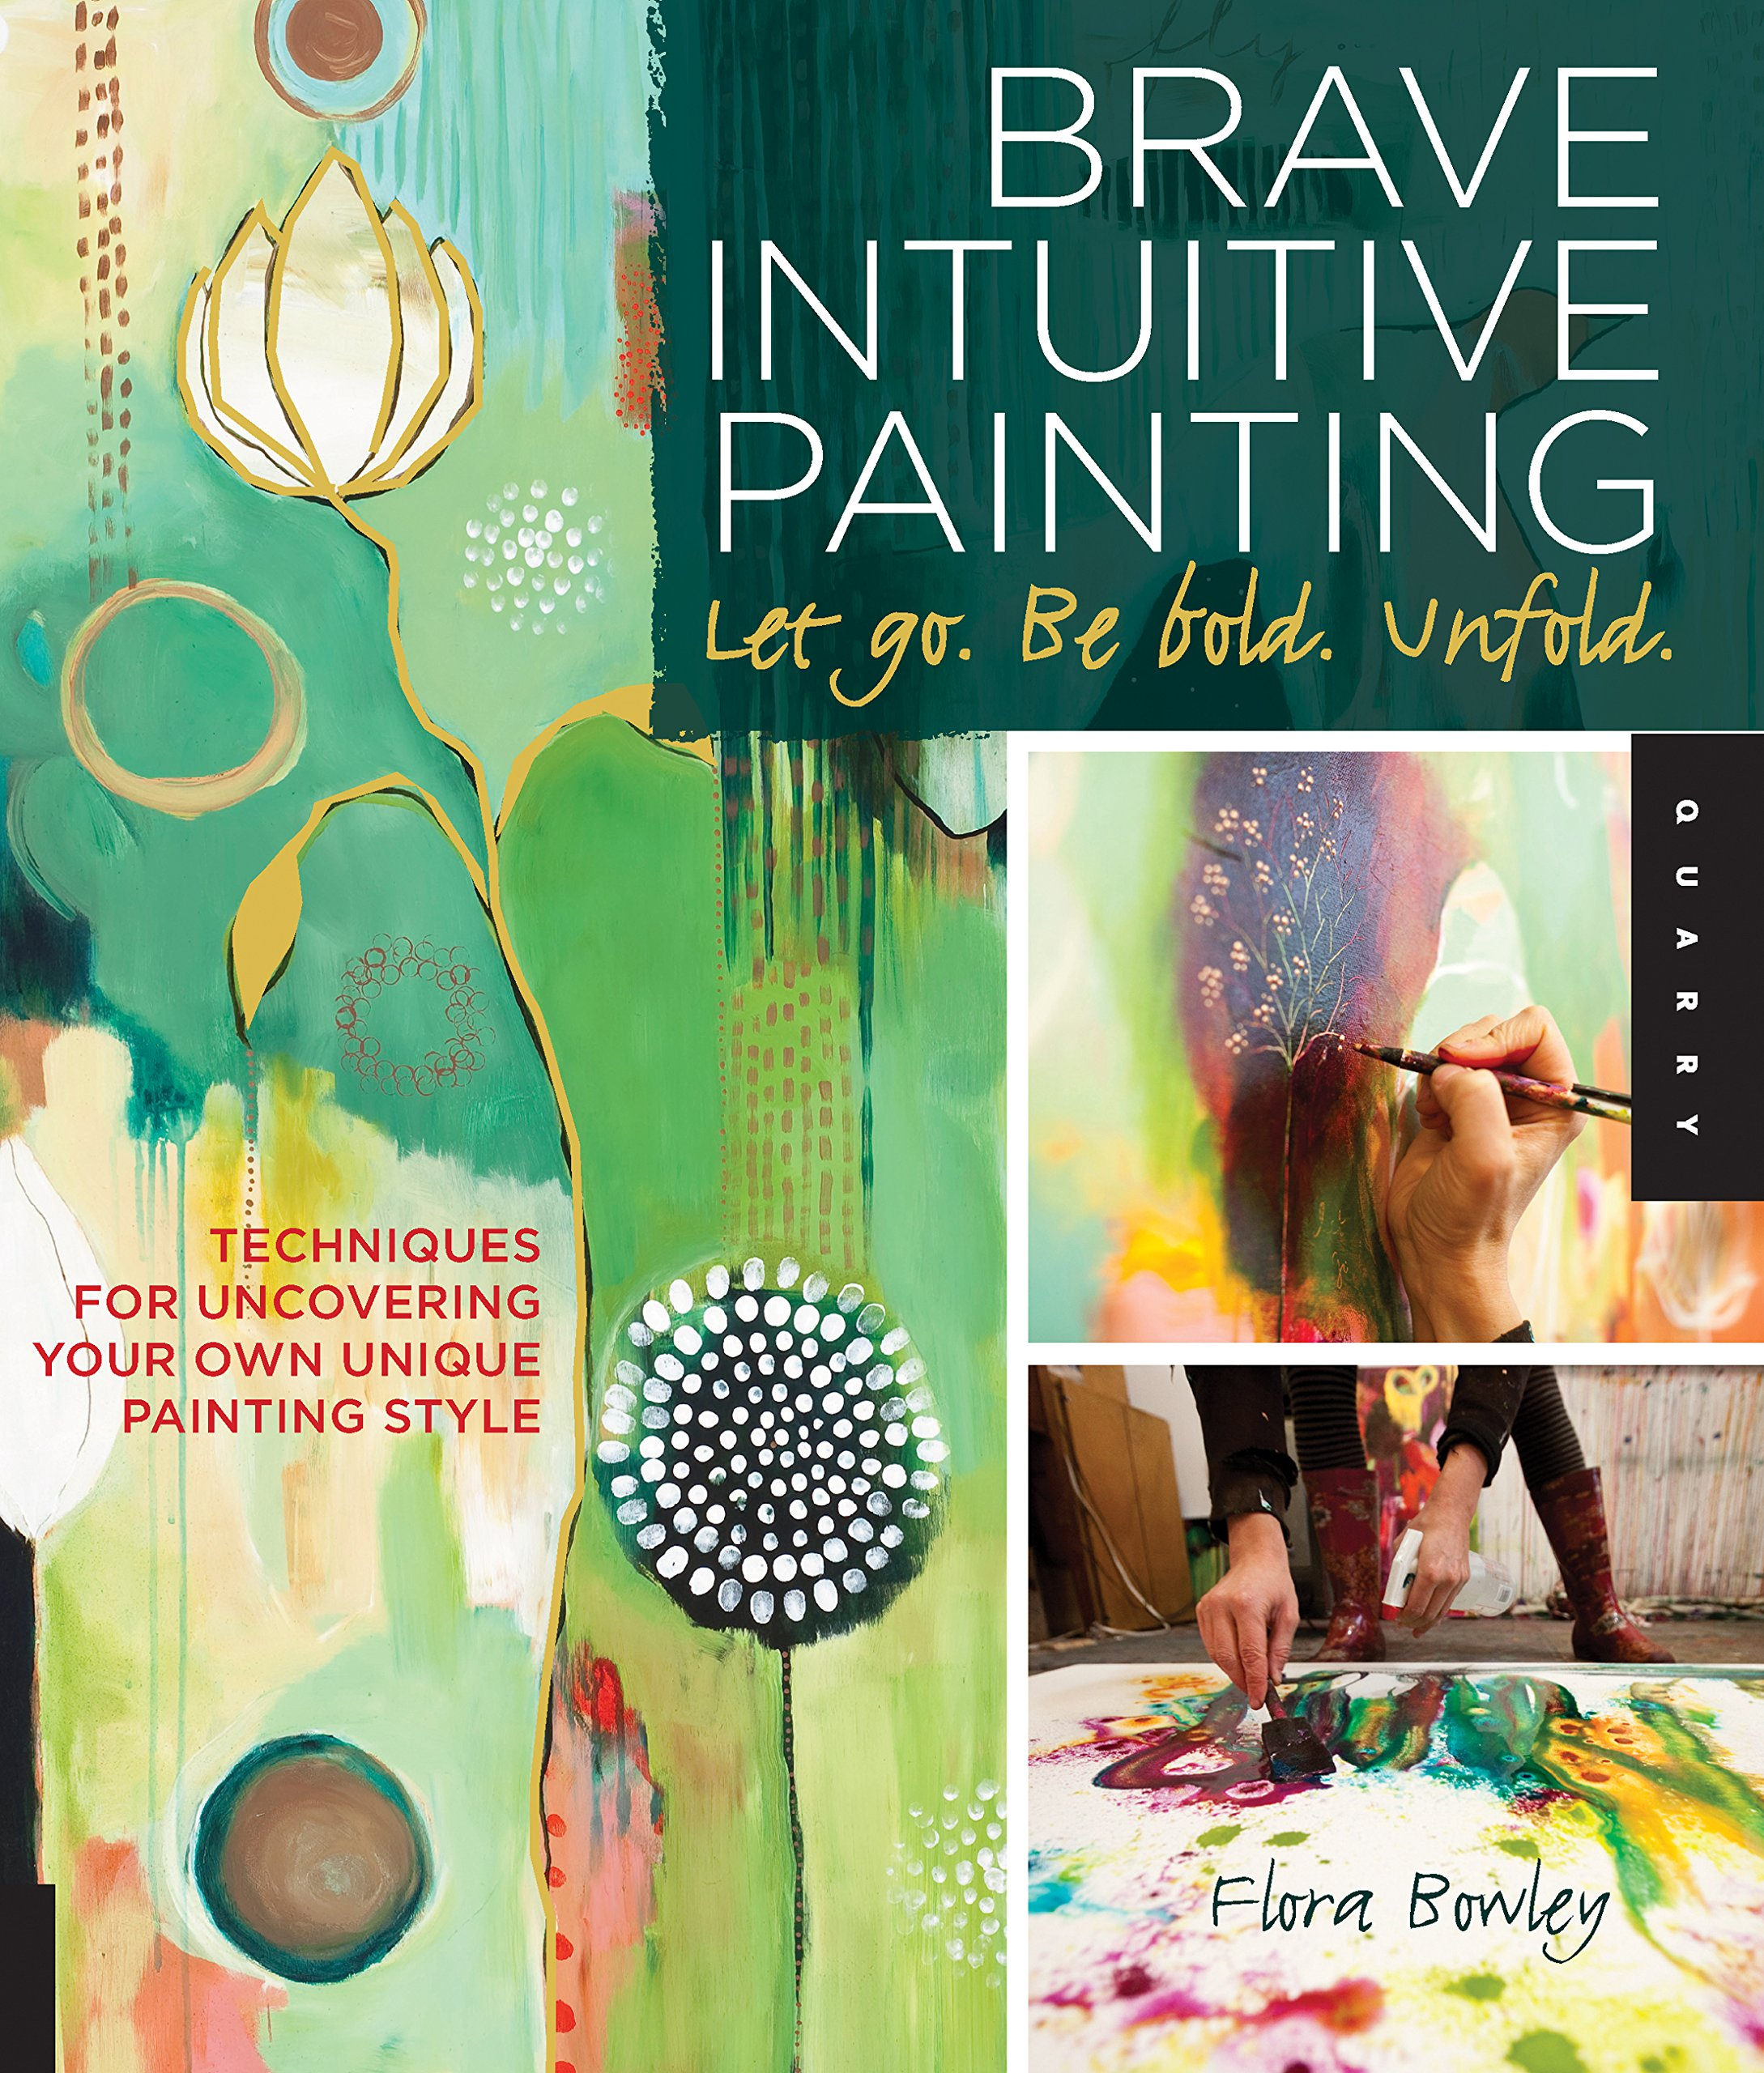 Brave Intuitive Painting Let Go. Be Bold. Unfold.: Techniques for Uncovering Your Own Unique Painting Style